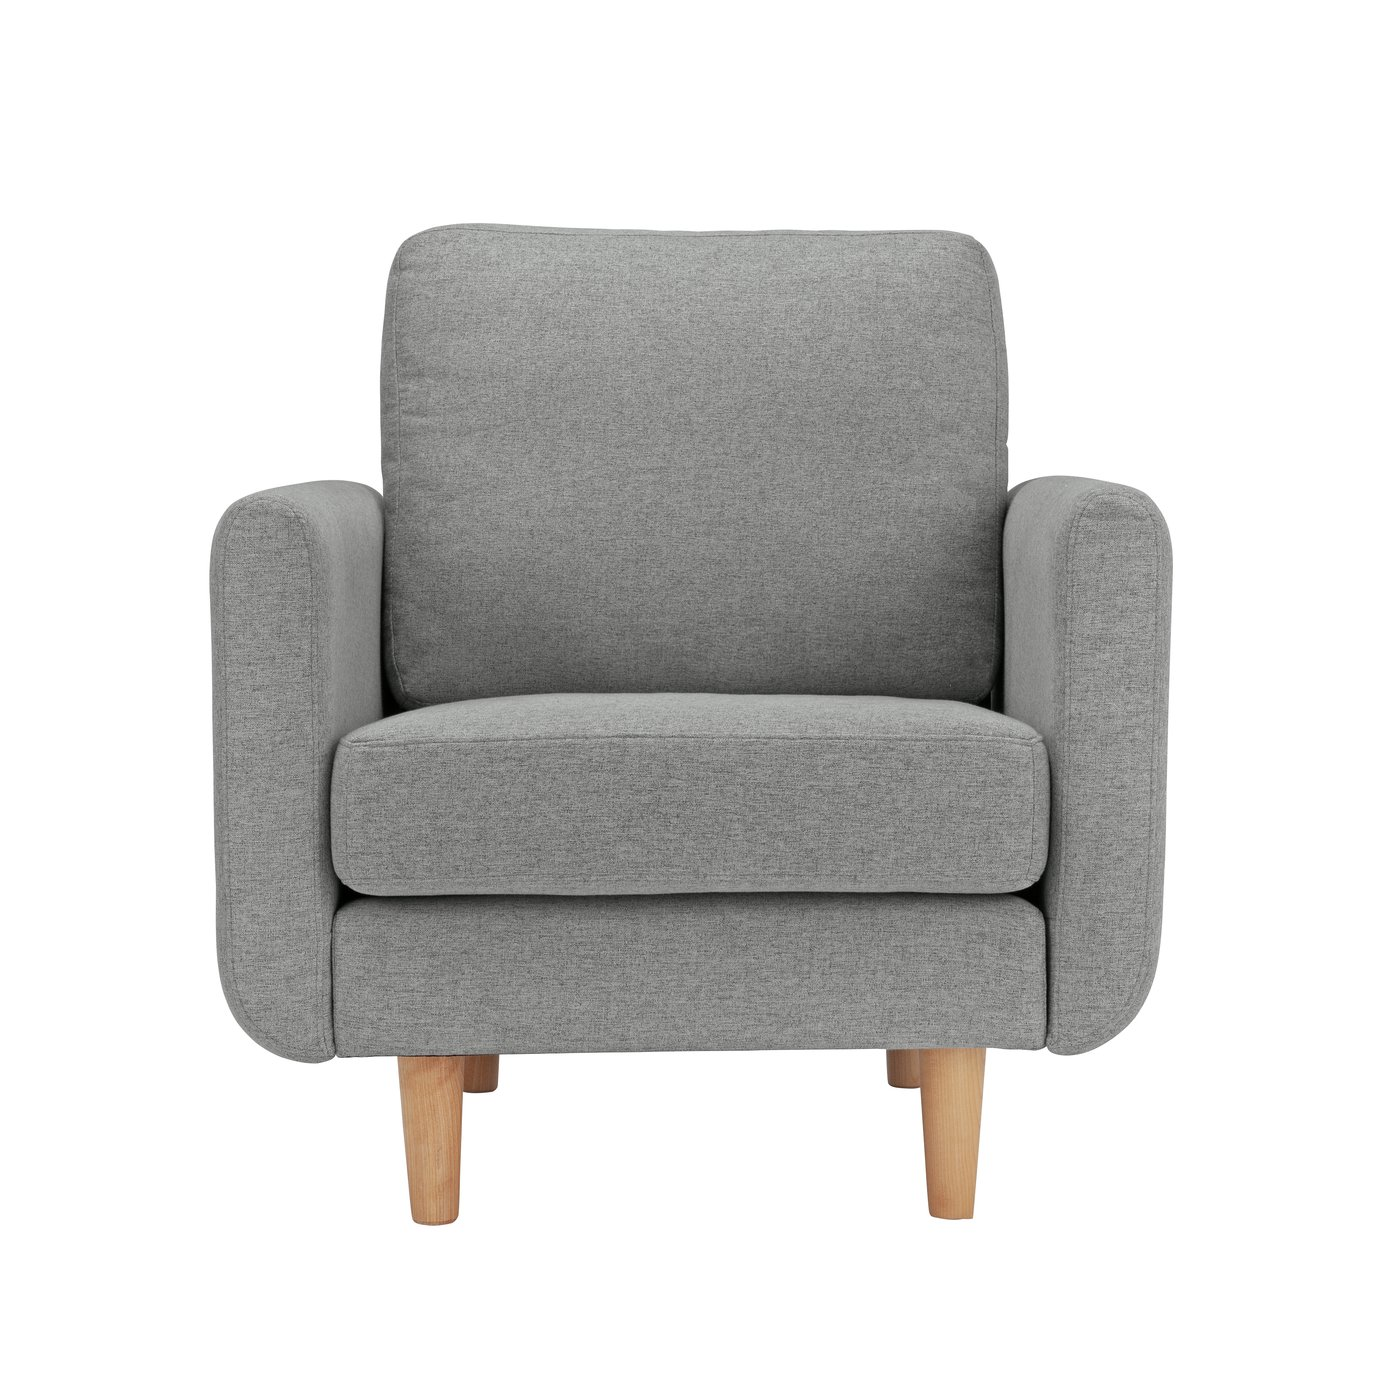 Argos Home Remi Fabric Armchair in a Box - Natural